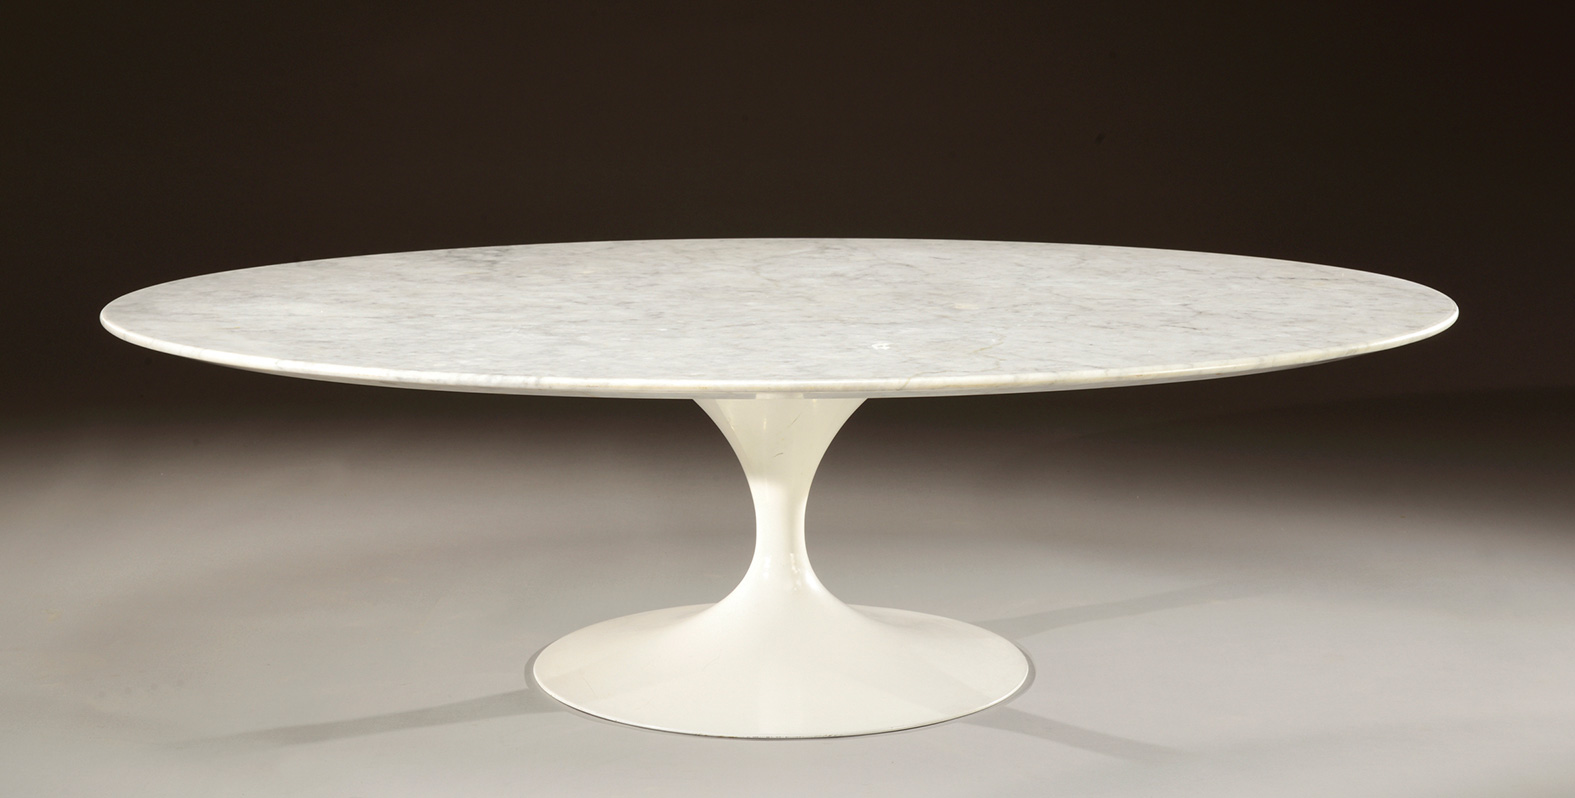 Eero saarinen 1910 1961 table basse plateau ovale en marbre blanc vein noir reposant sur un Table basse saarinen